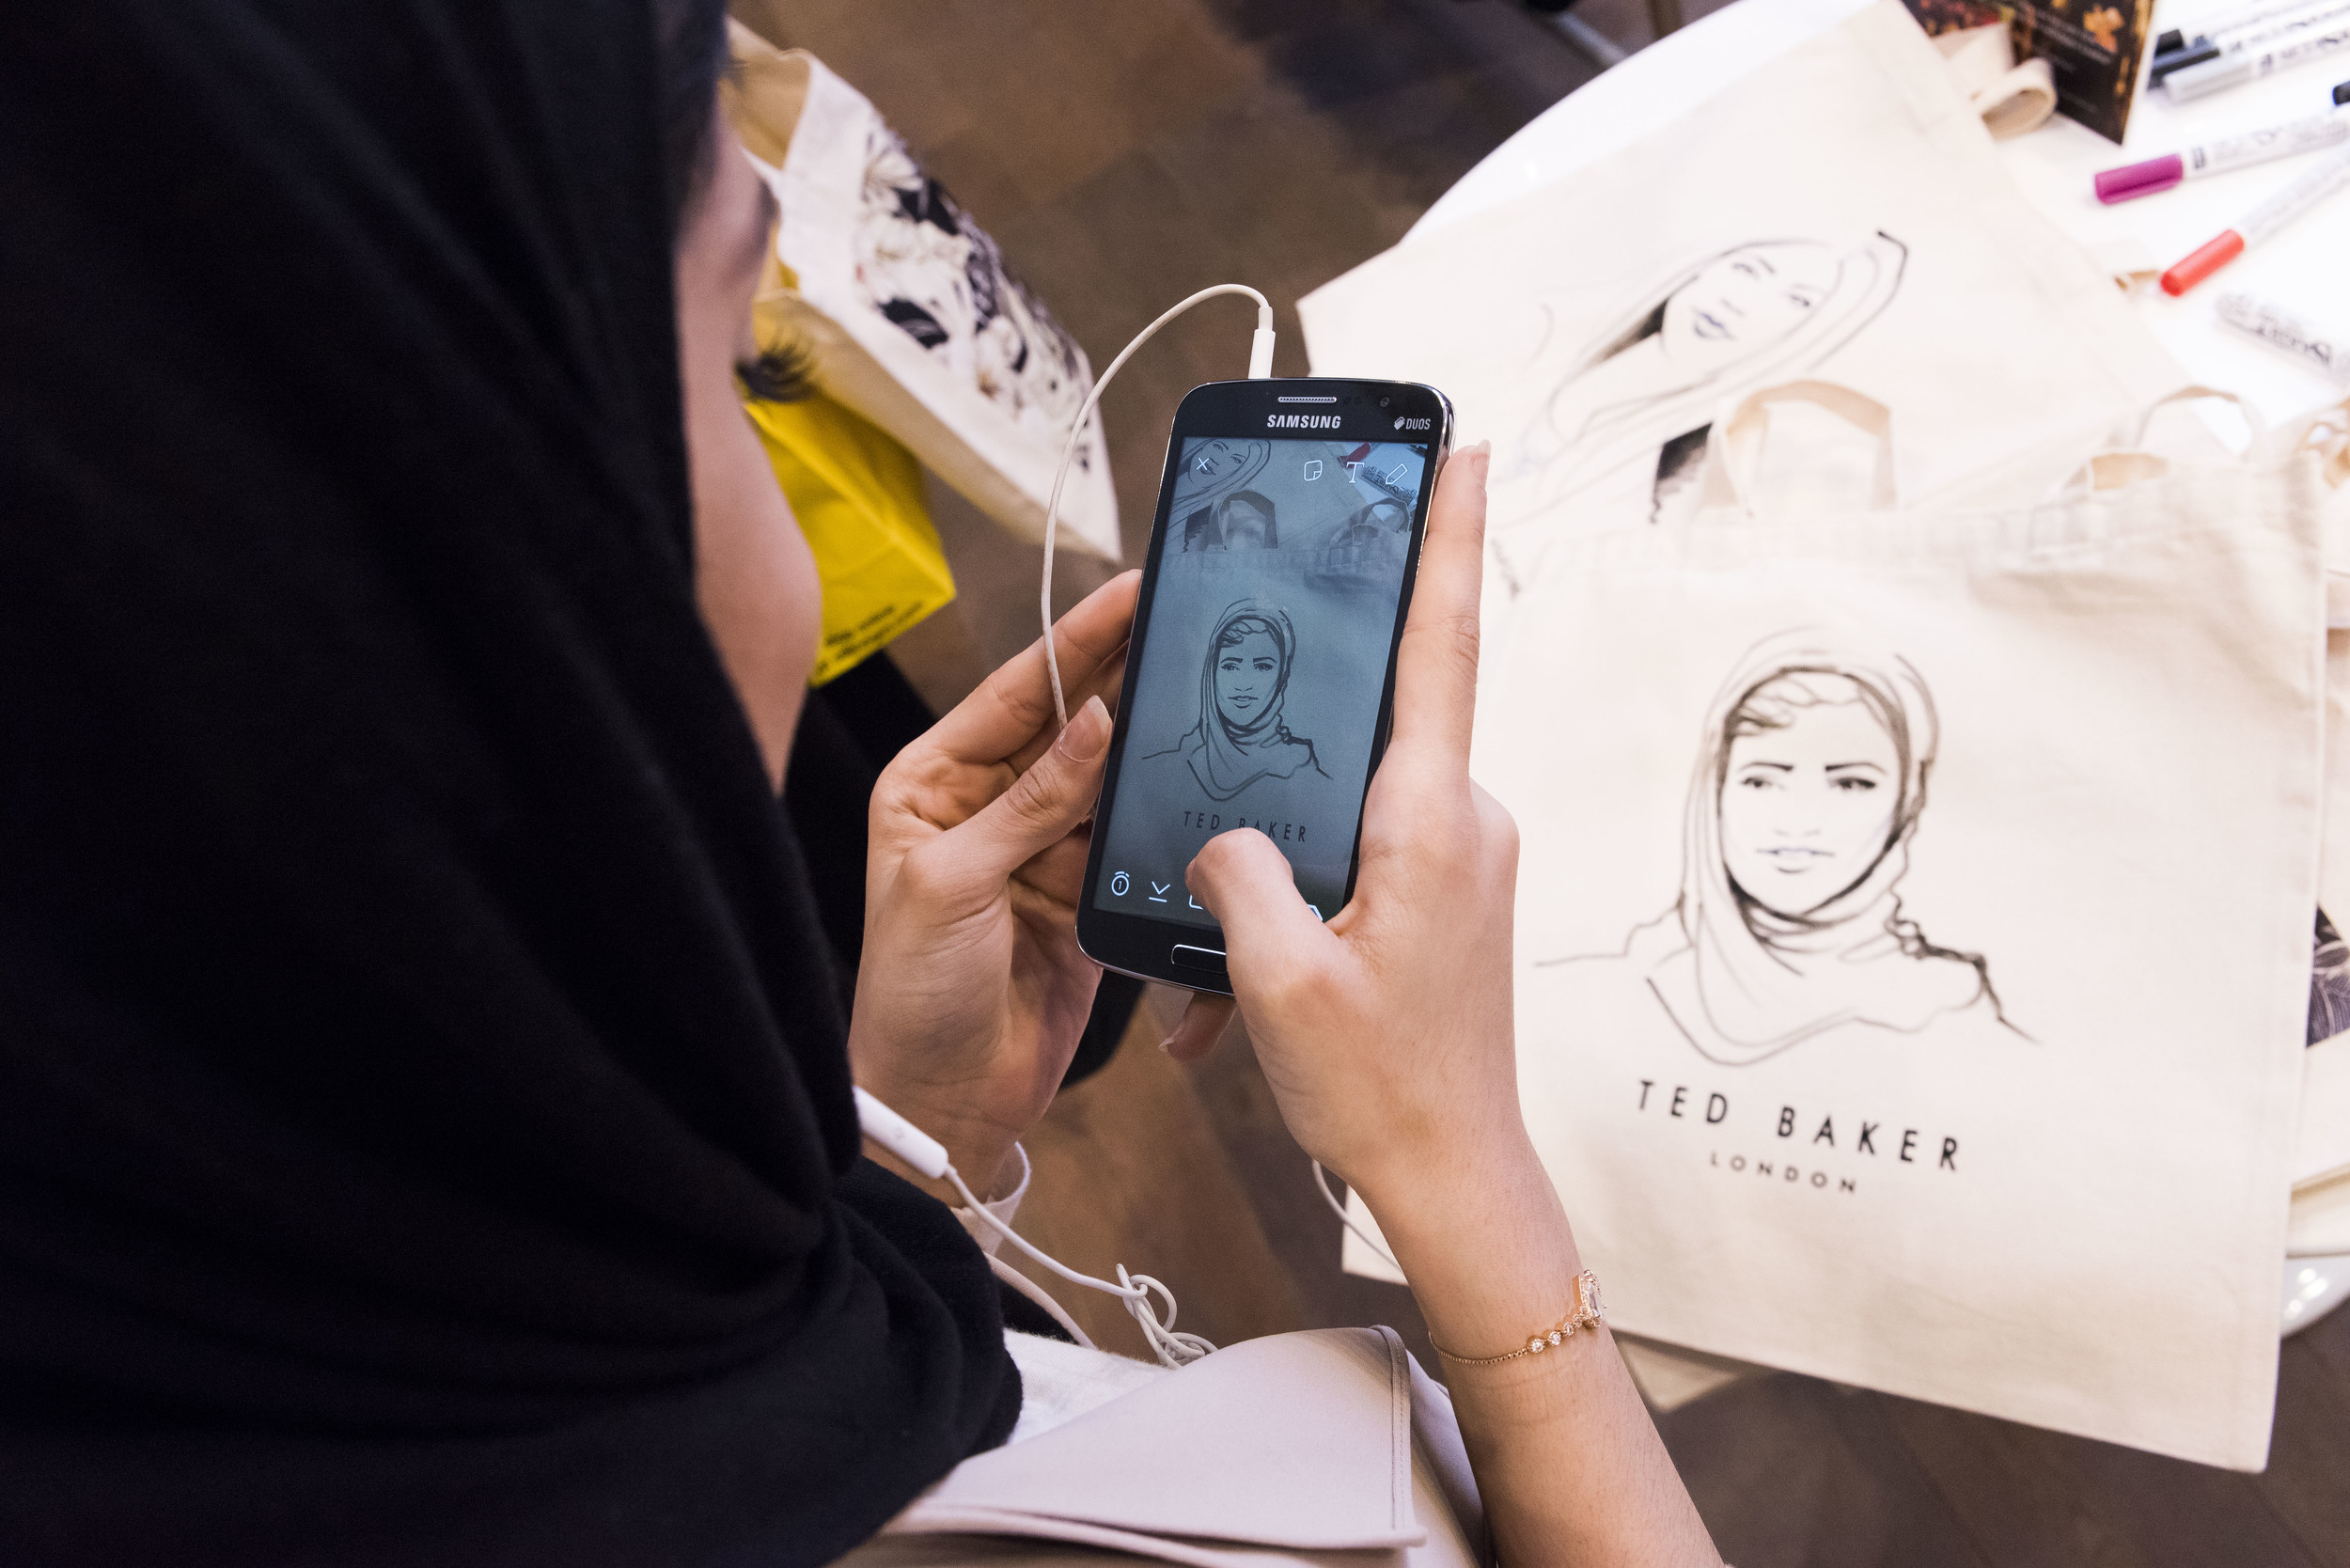 Willa Gebbie live portrait illustration onto tote bags at Ted Baker, Selfridges, London with LiL colective